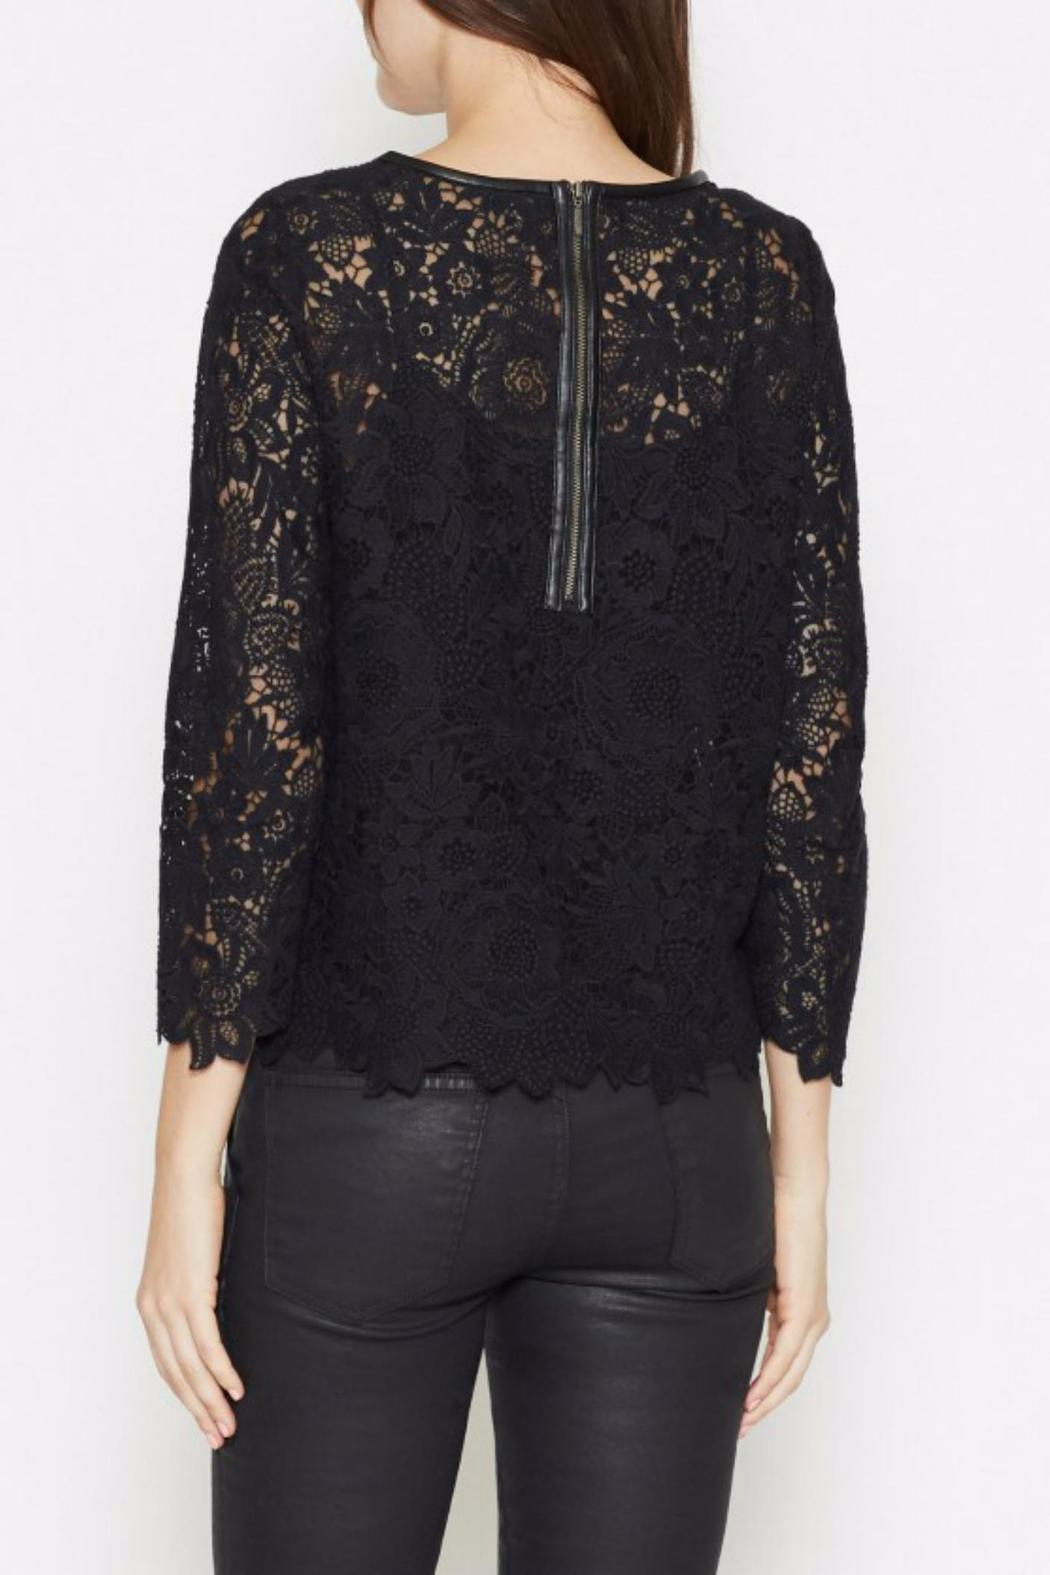 Joie Antonia Lace Top - Front Full Image